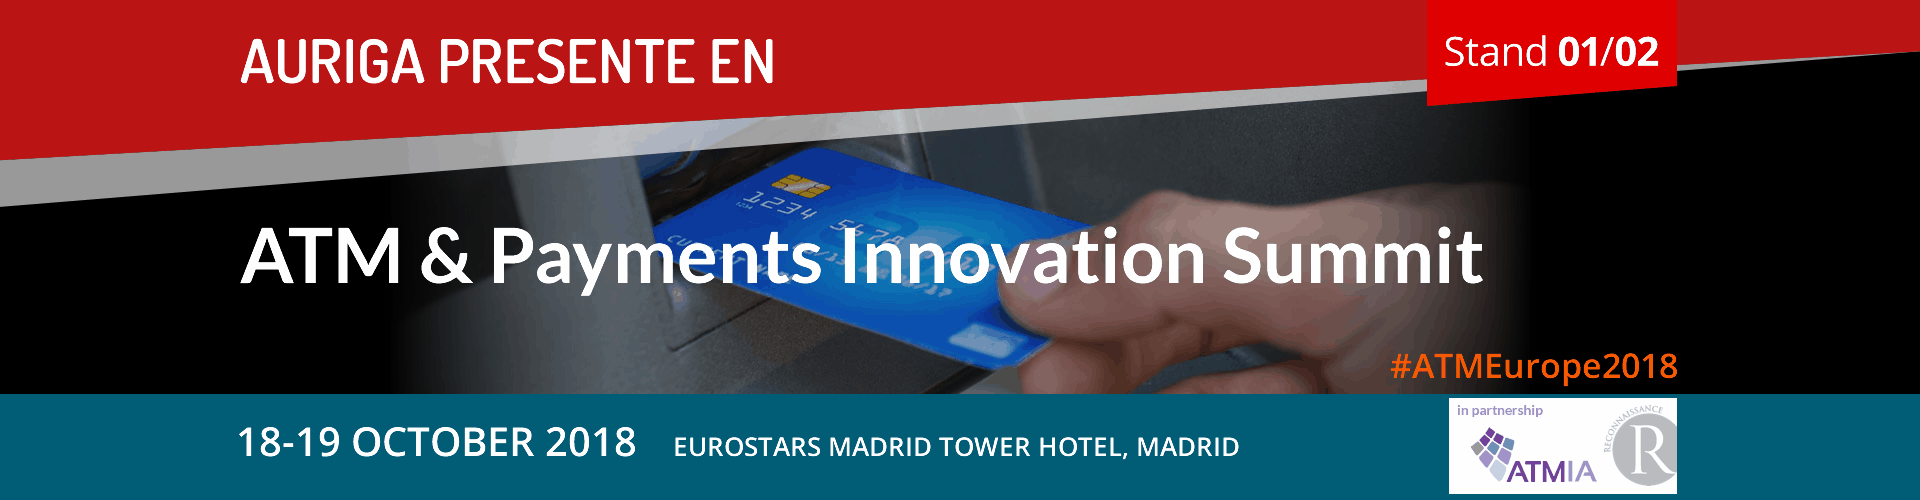 ATMIA Atm & Payments Innovation Summit 2018 Madrid